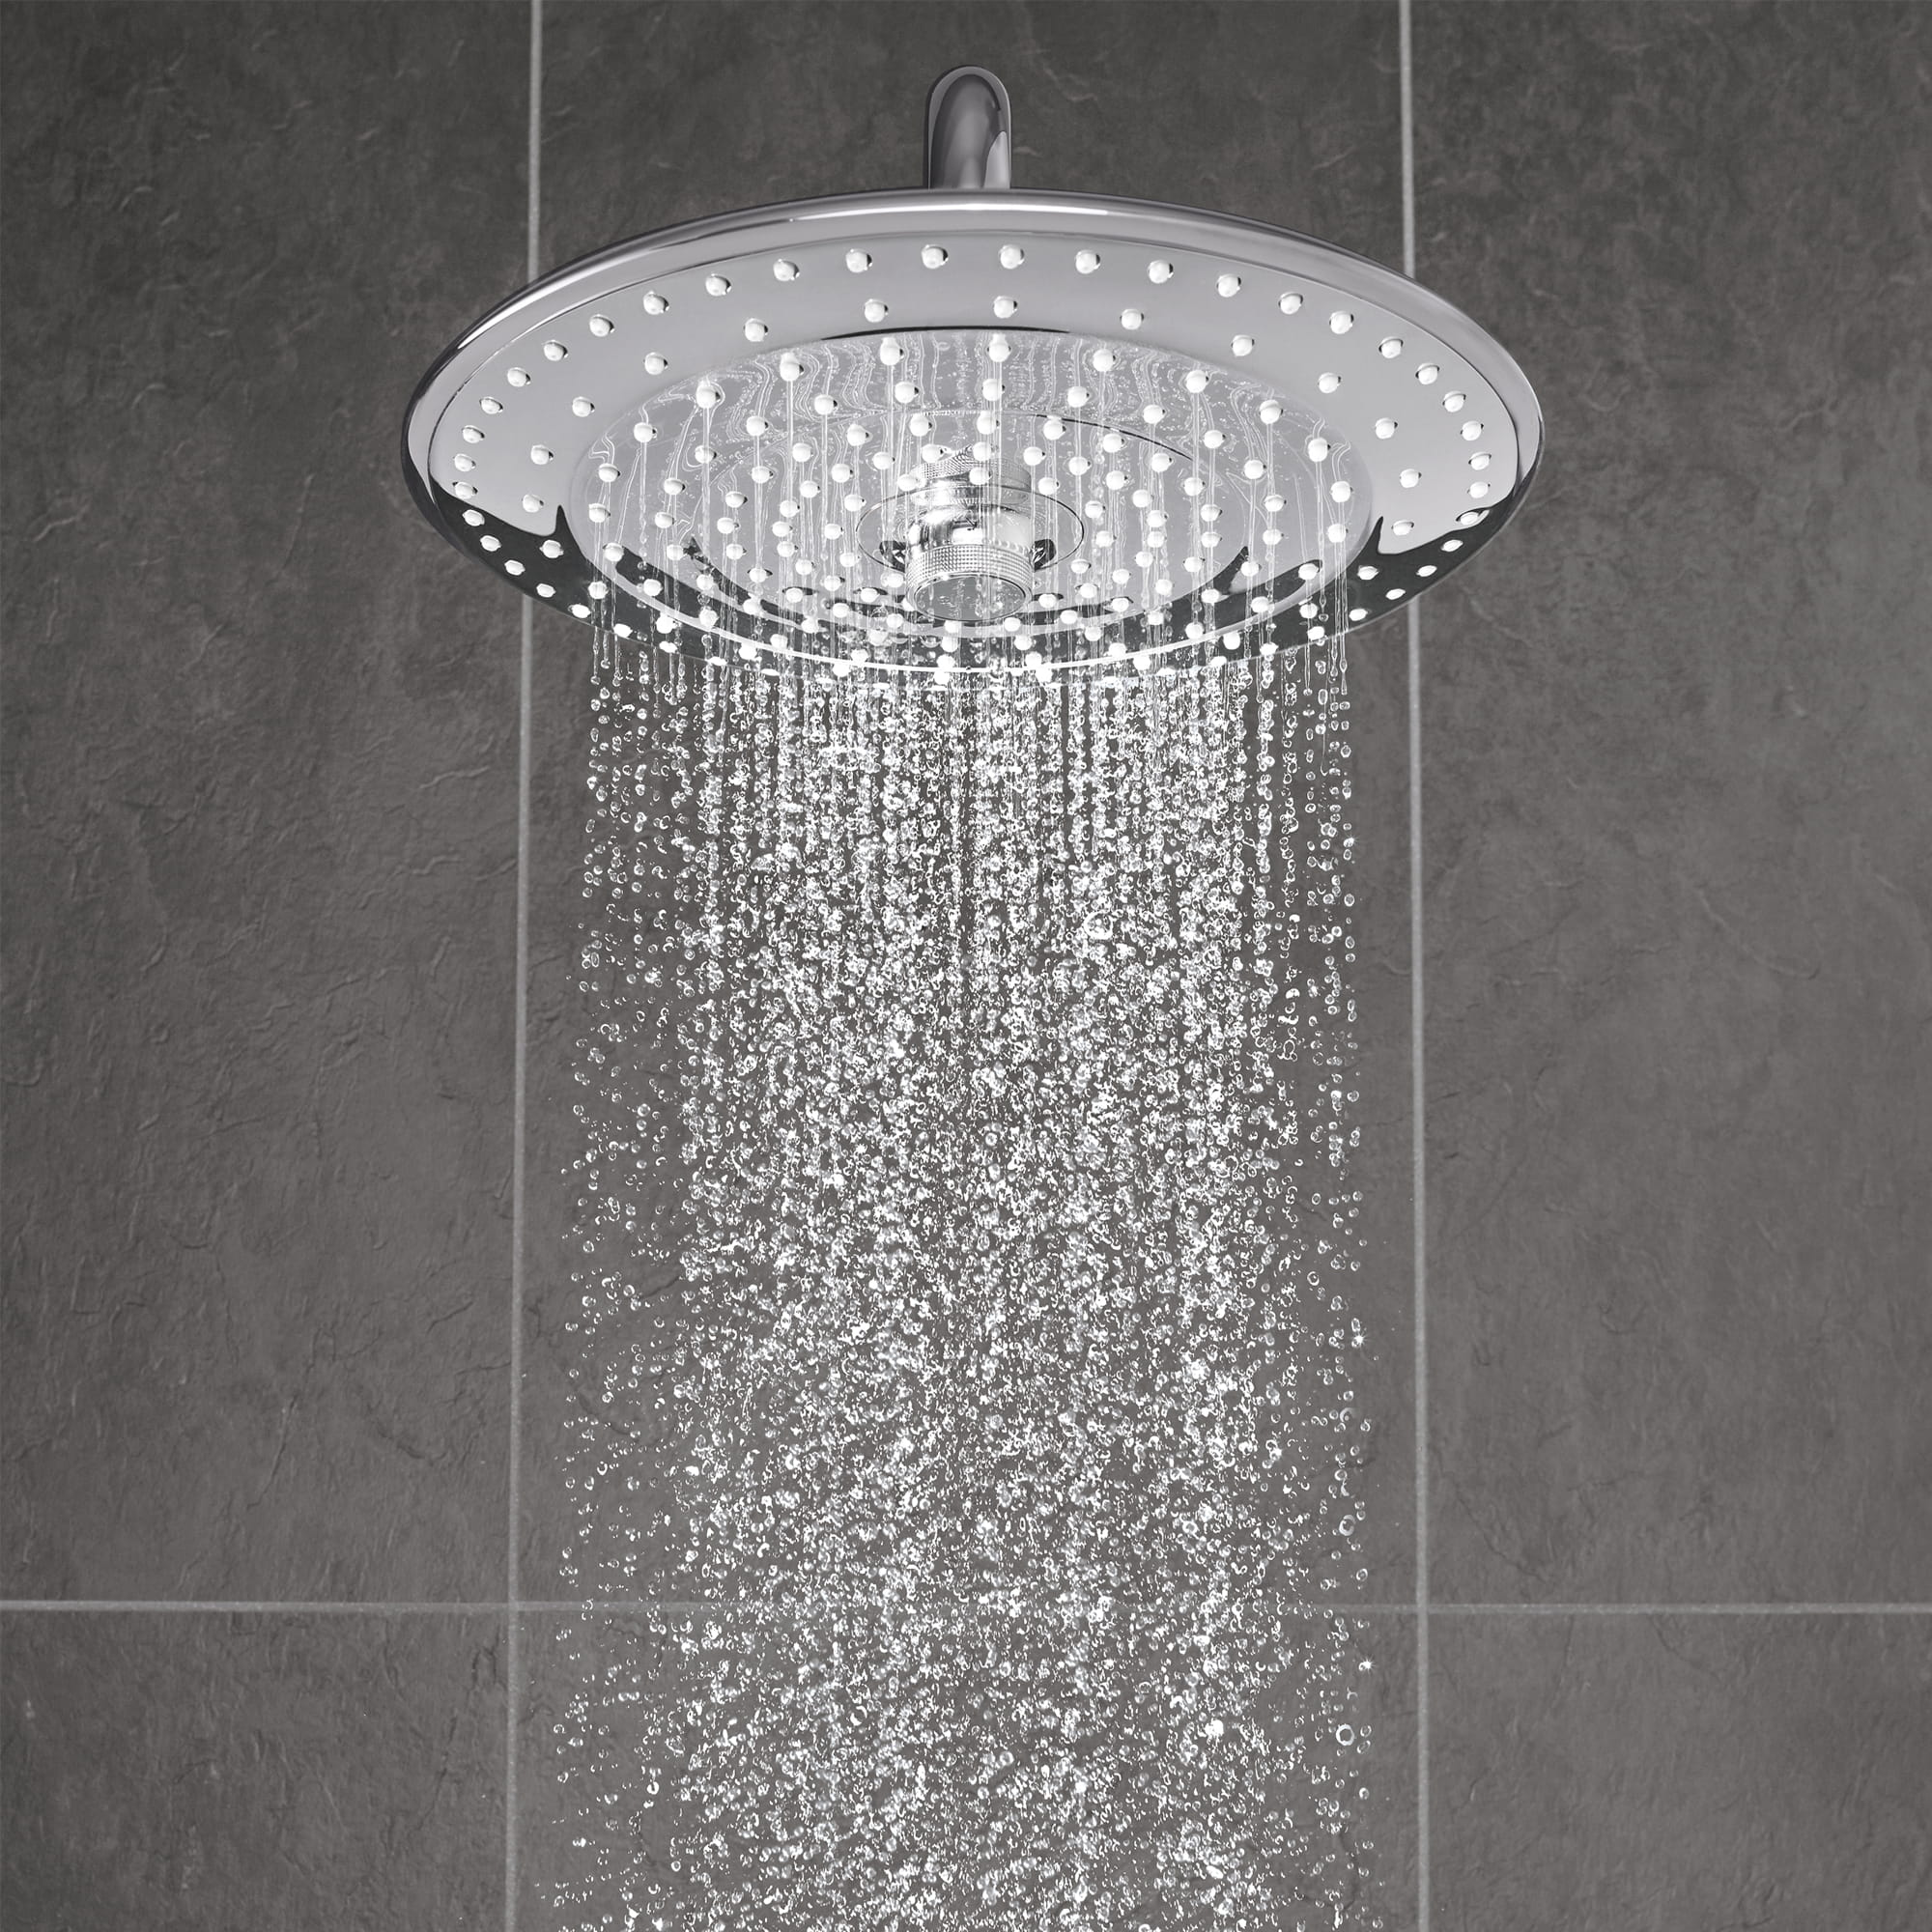 Shower head displaying Full face Rain spray.